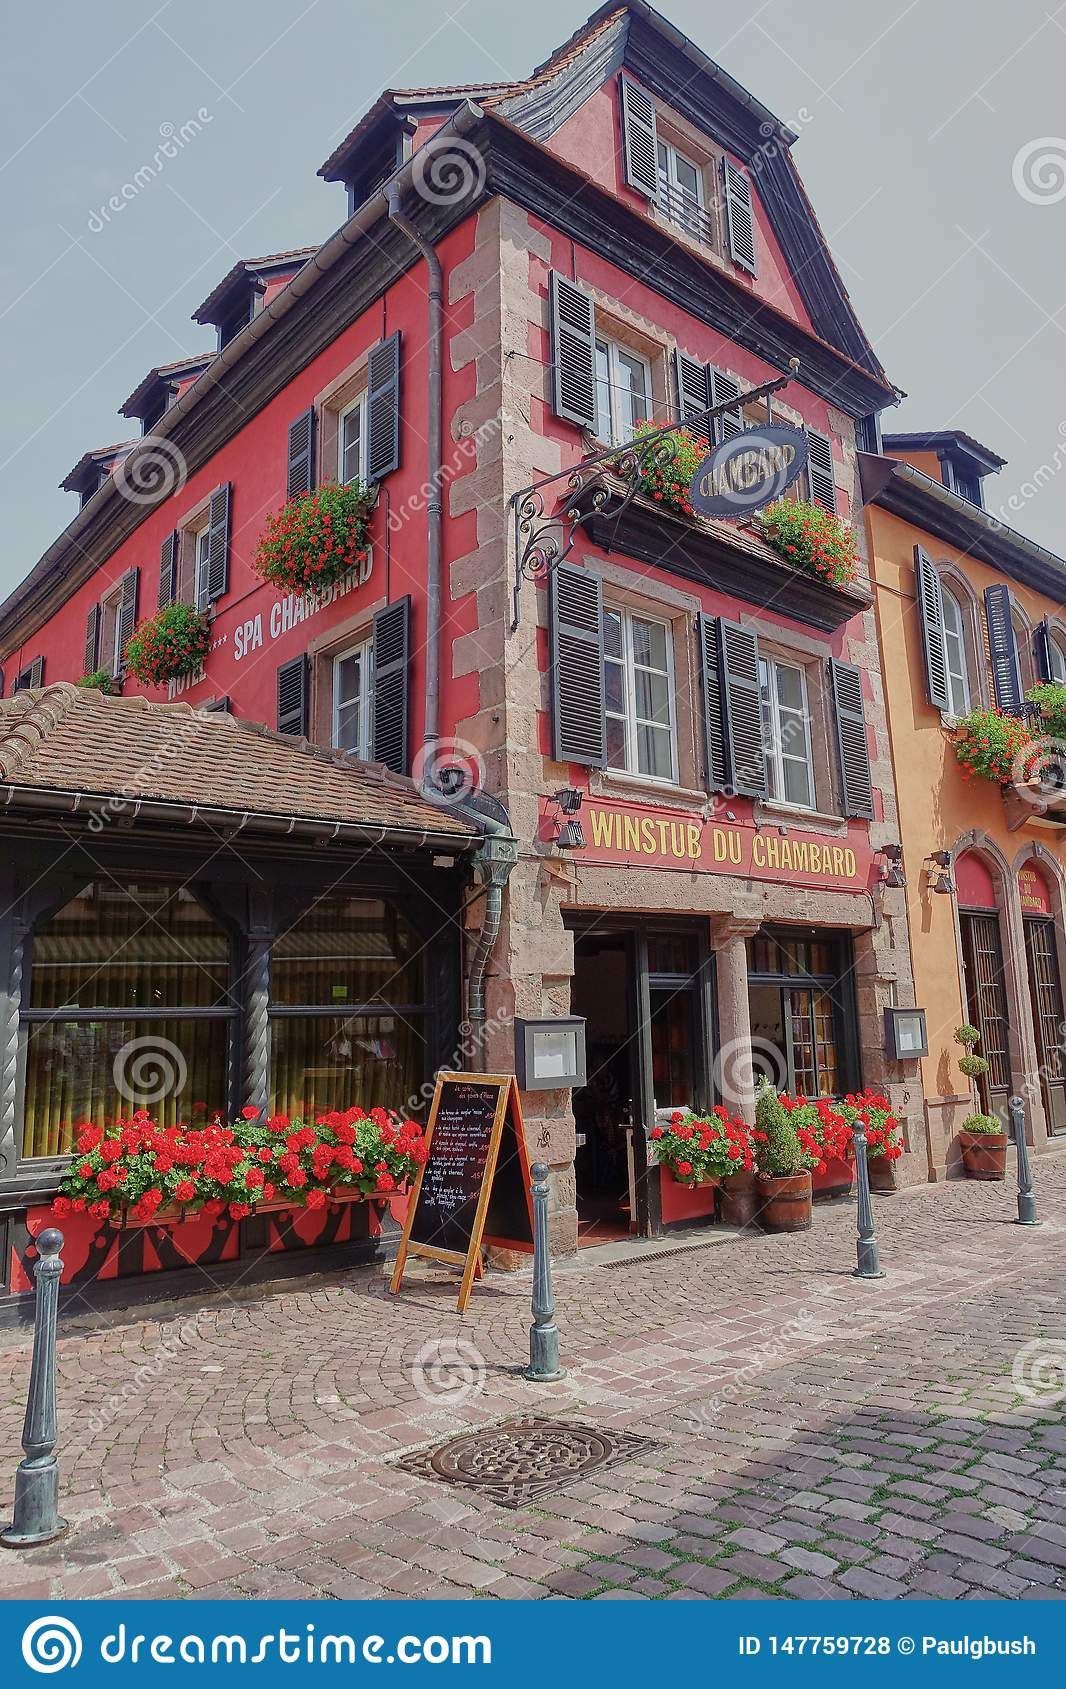 Exterior View of Relais & Chateau Hotel Chambard in Kaysersberg